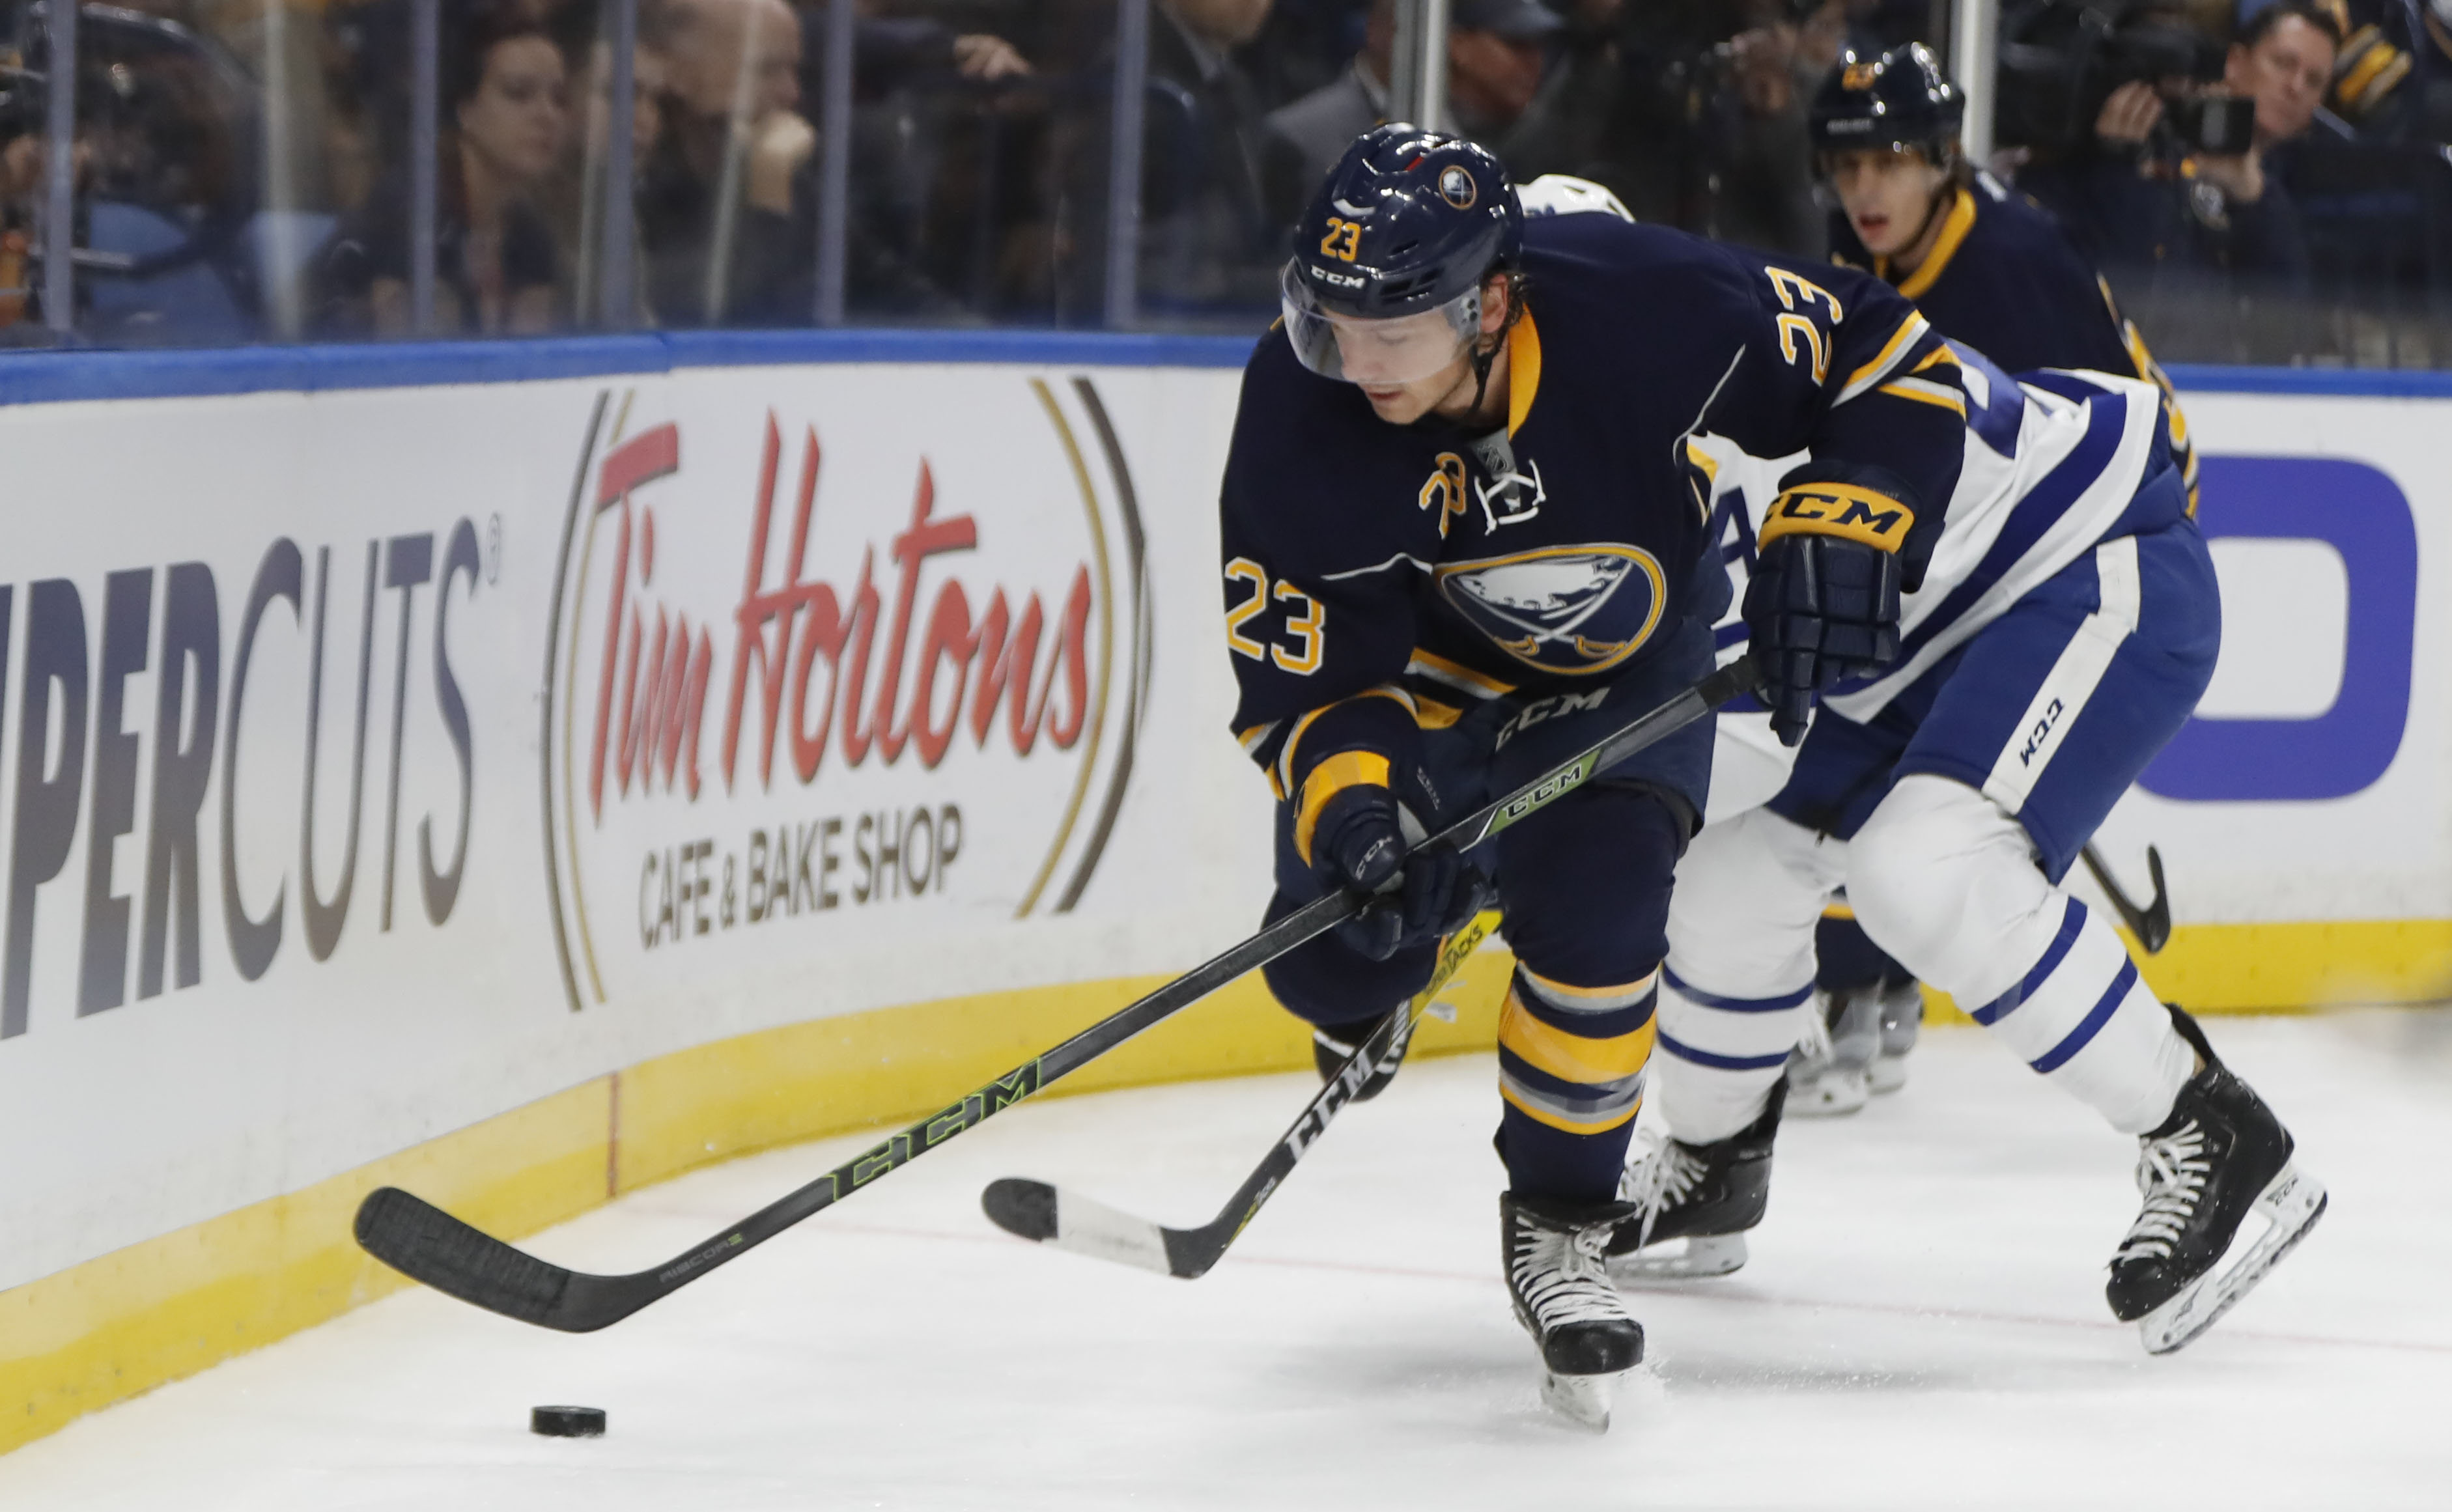 Sam Reinhart works down low against the Toronto Maple Leafs during first period action Thursday (Harry Scull Jr./Buffalo News)